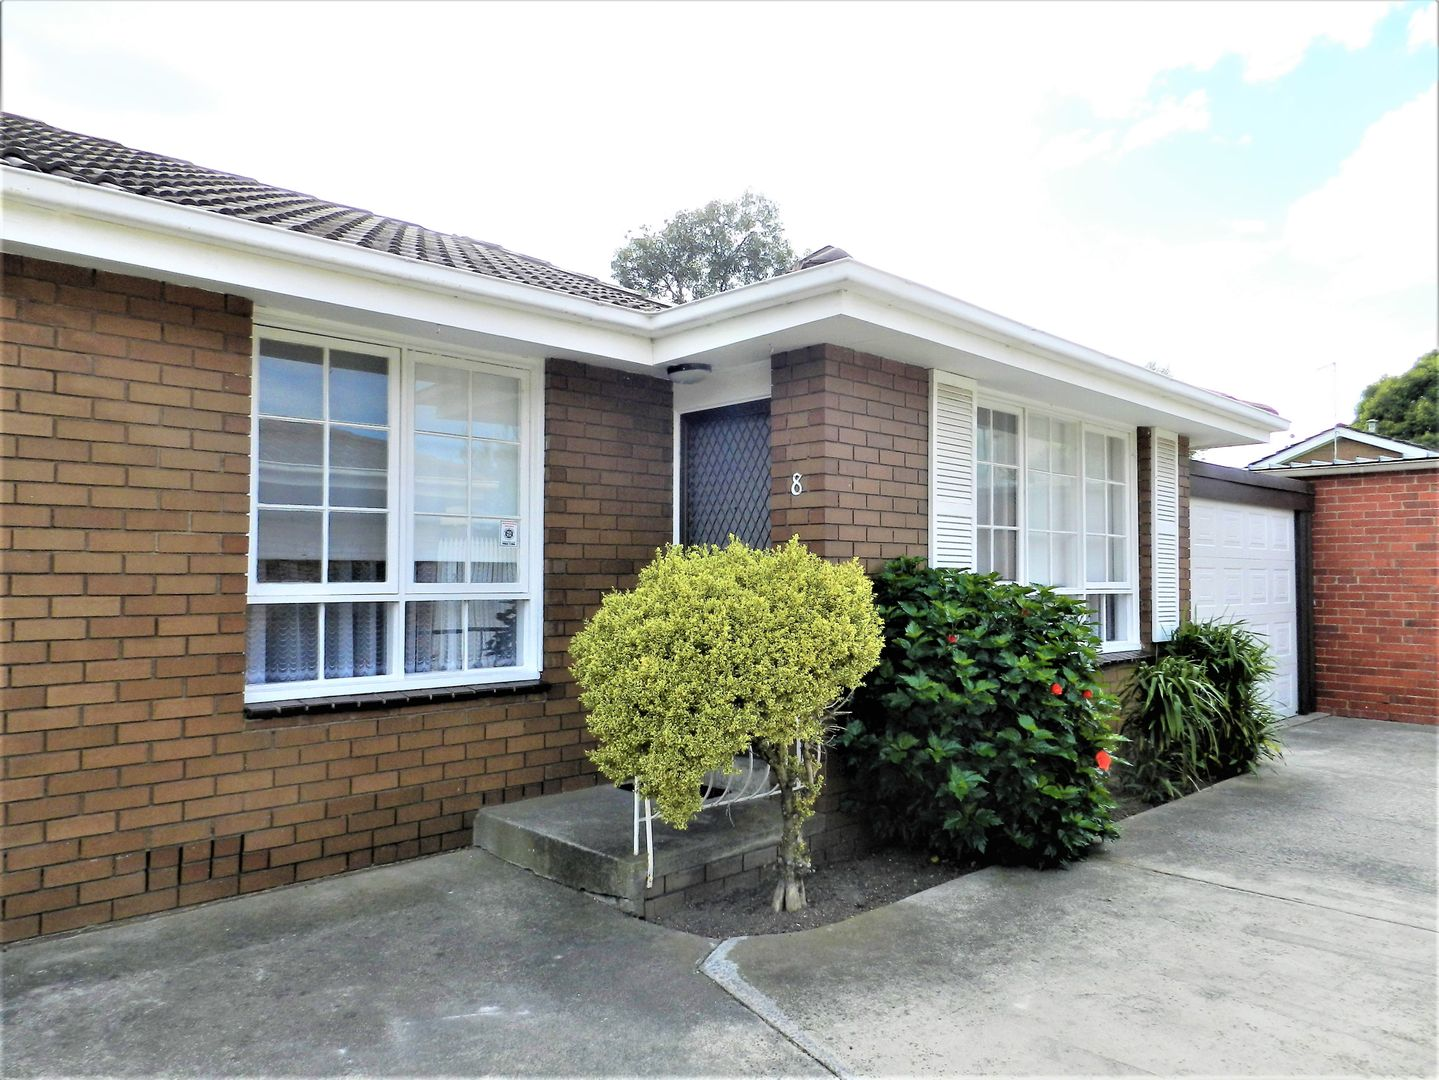 8/15 Lilian Court, Beaumaris VIC 3193, Image 0